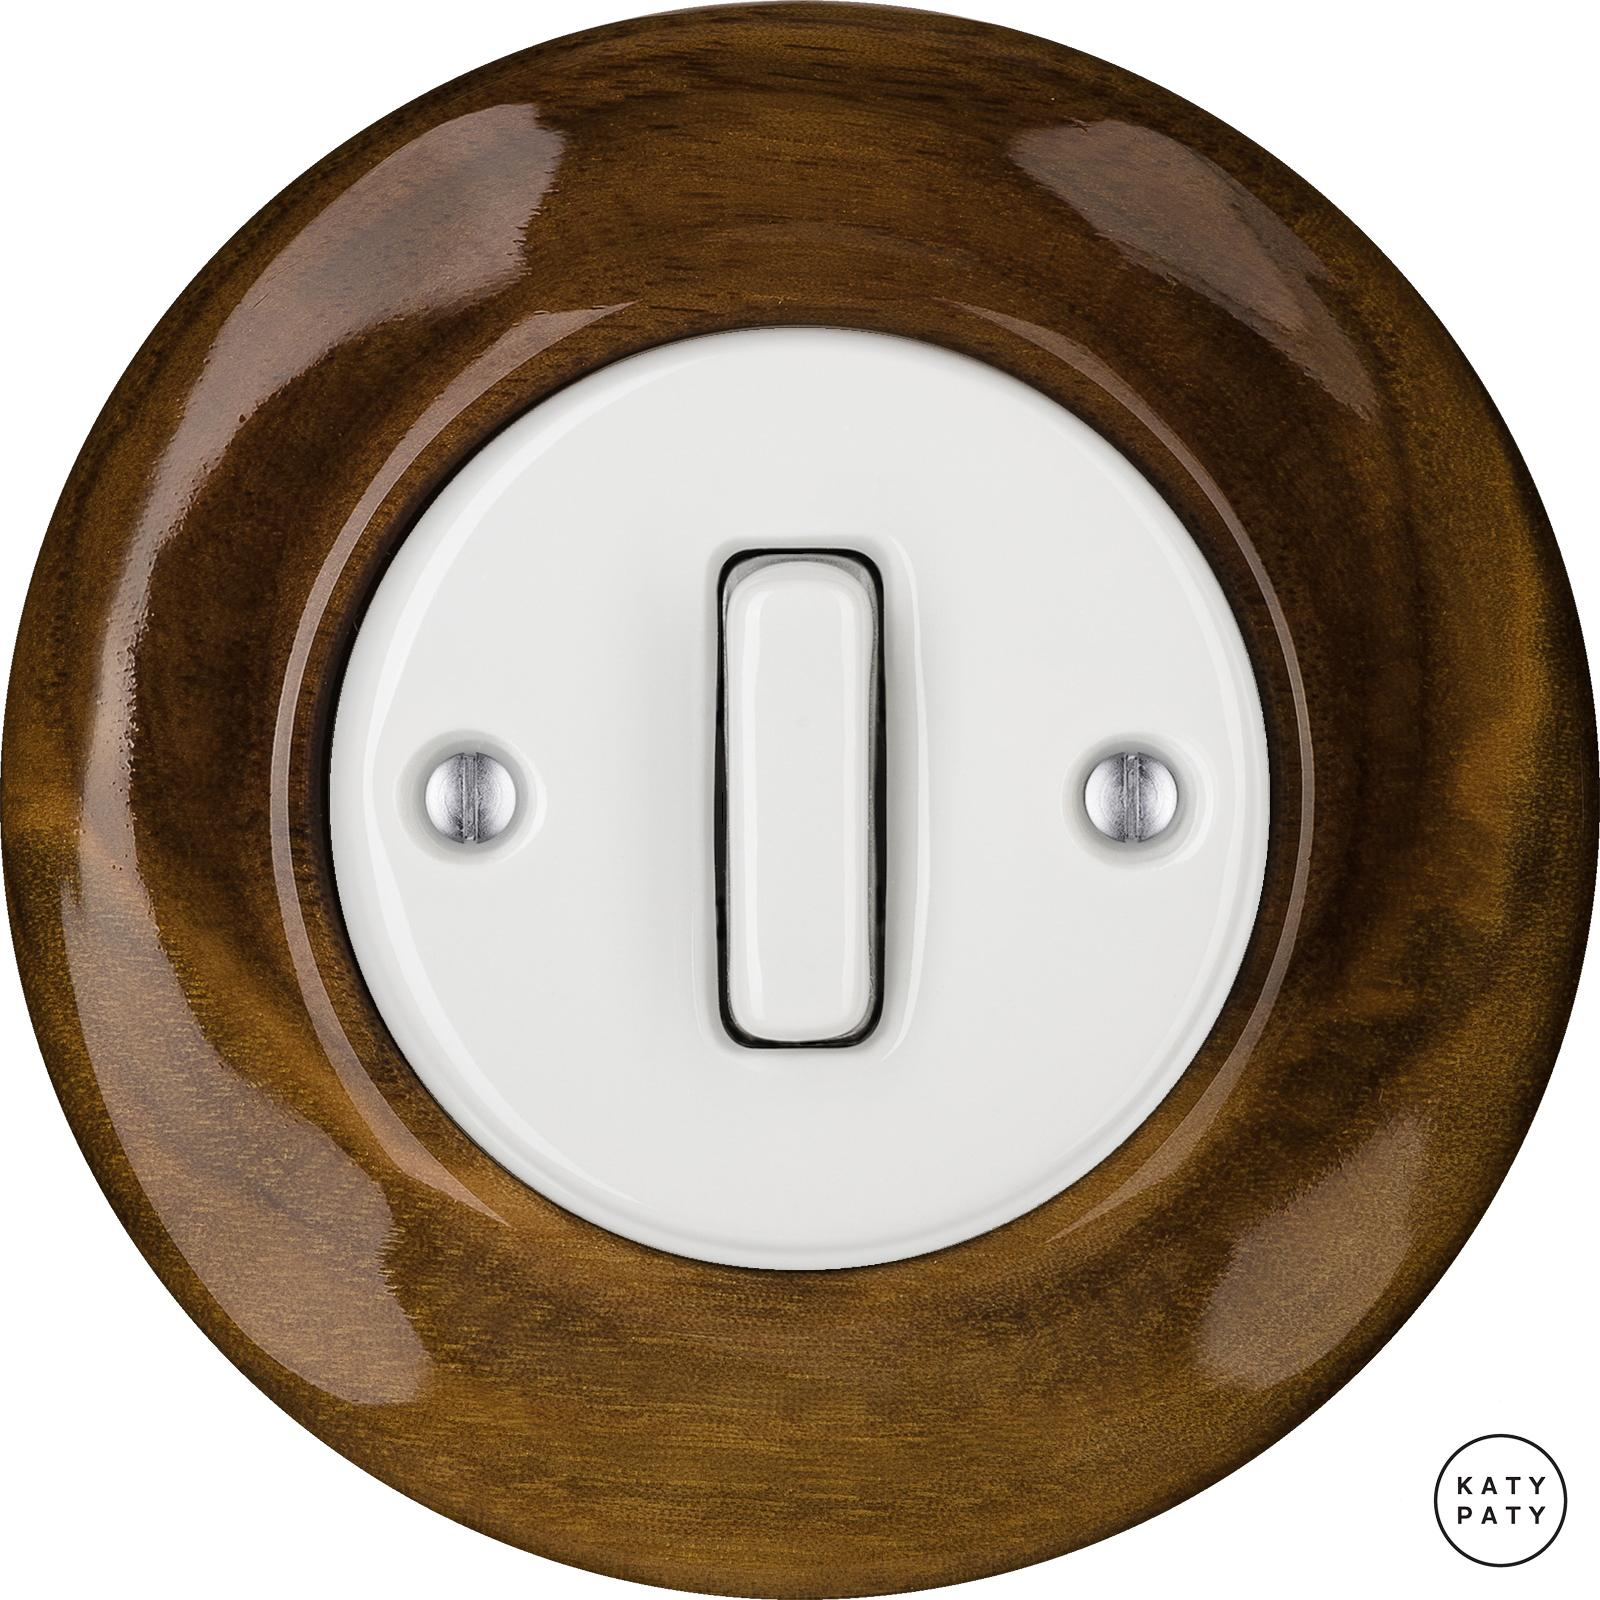 Porcelain switches - a single key - SLIM ()  - NUC MAG | Katy Paty